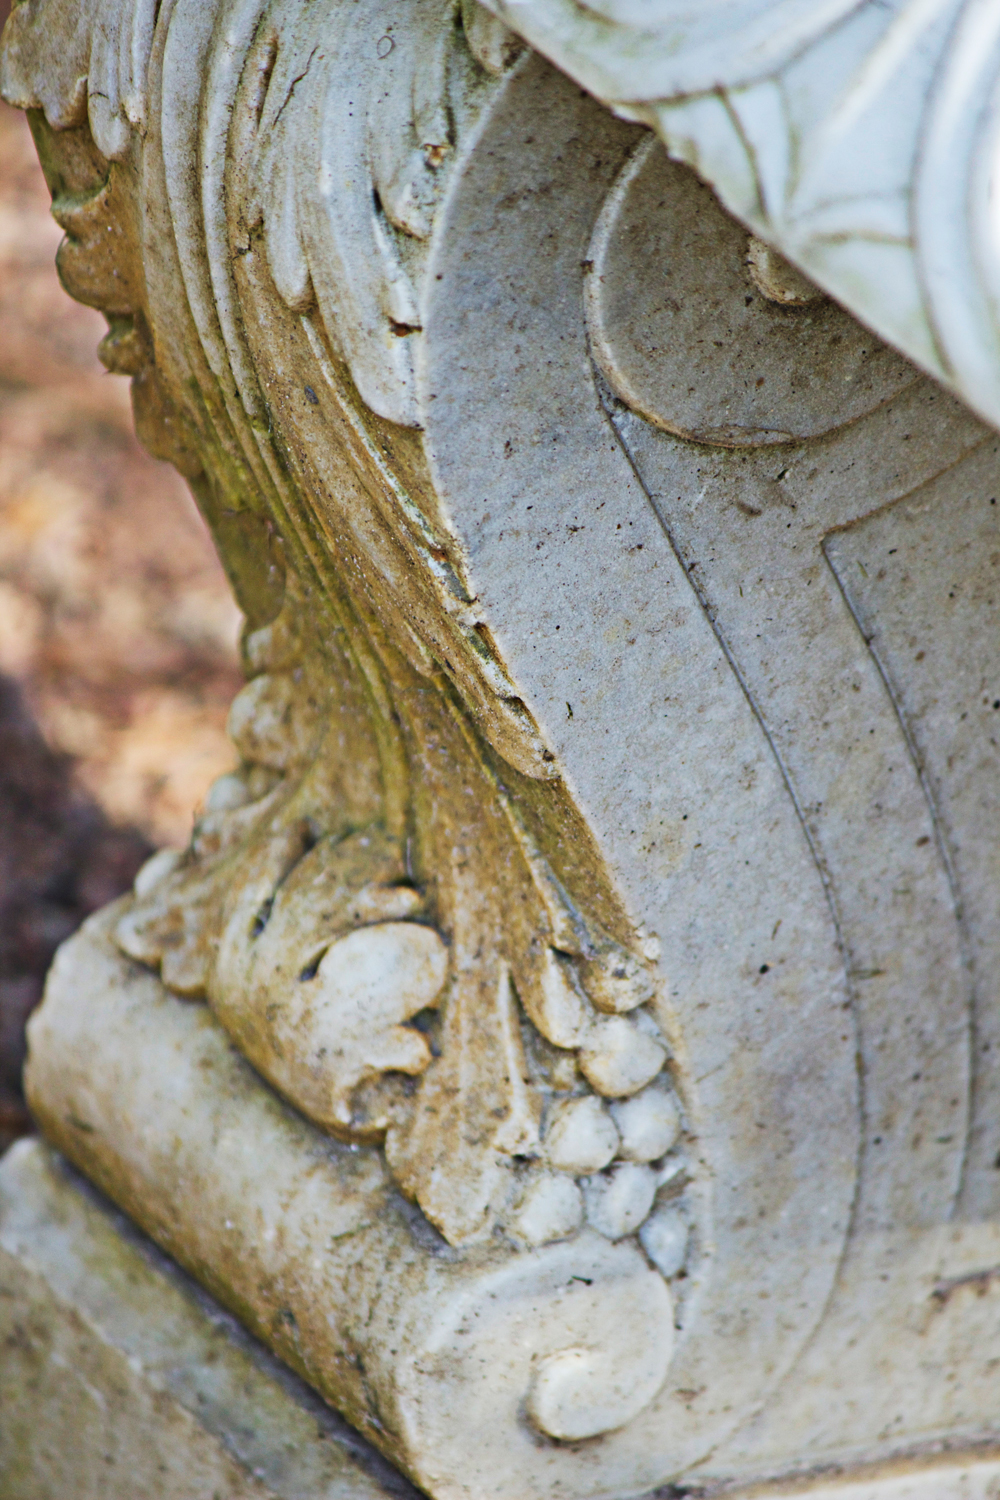 close up of stone urn - photo copyright Allison Beth Cooling